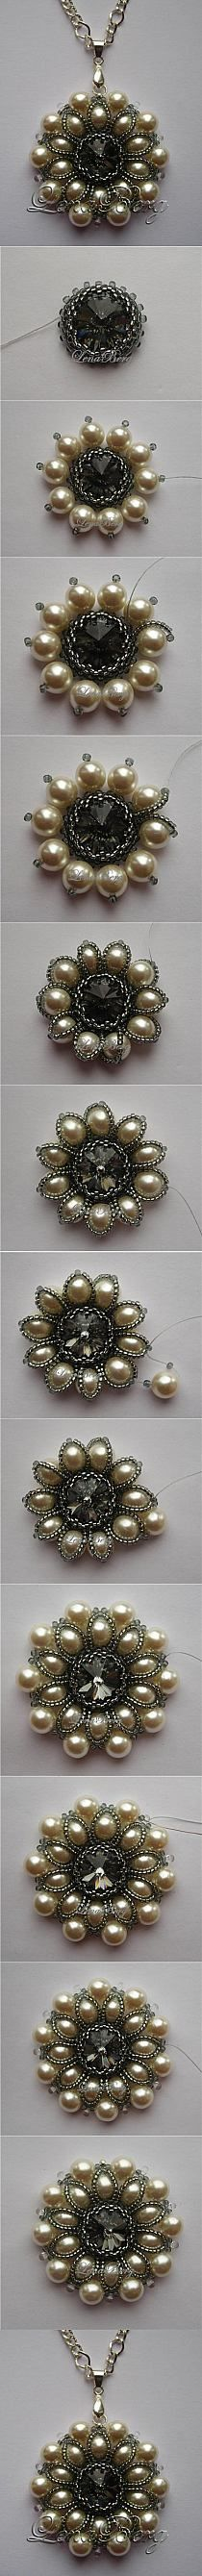 Tutorial for a large rivoli and pearl pendant